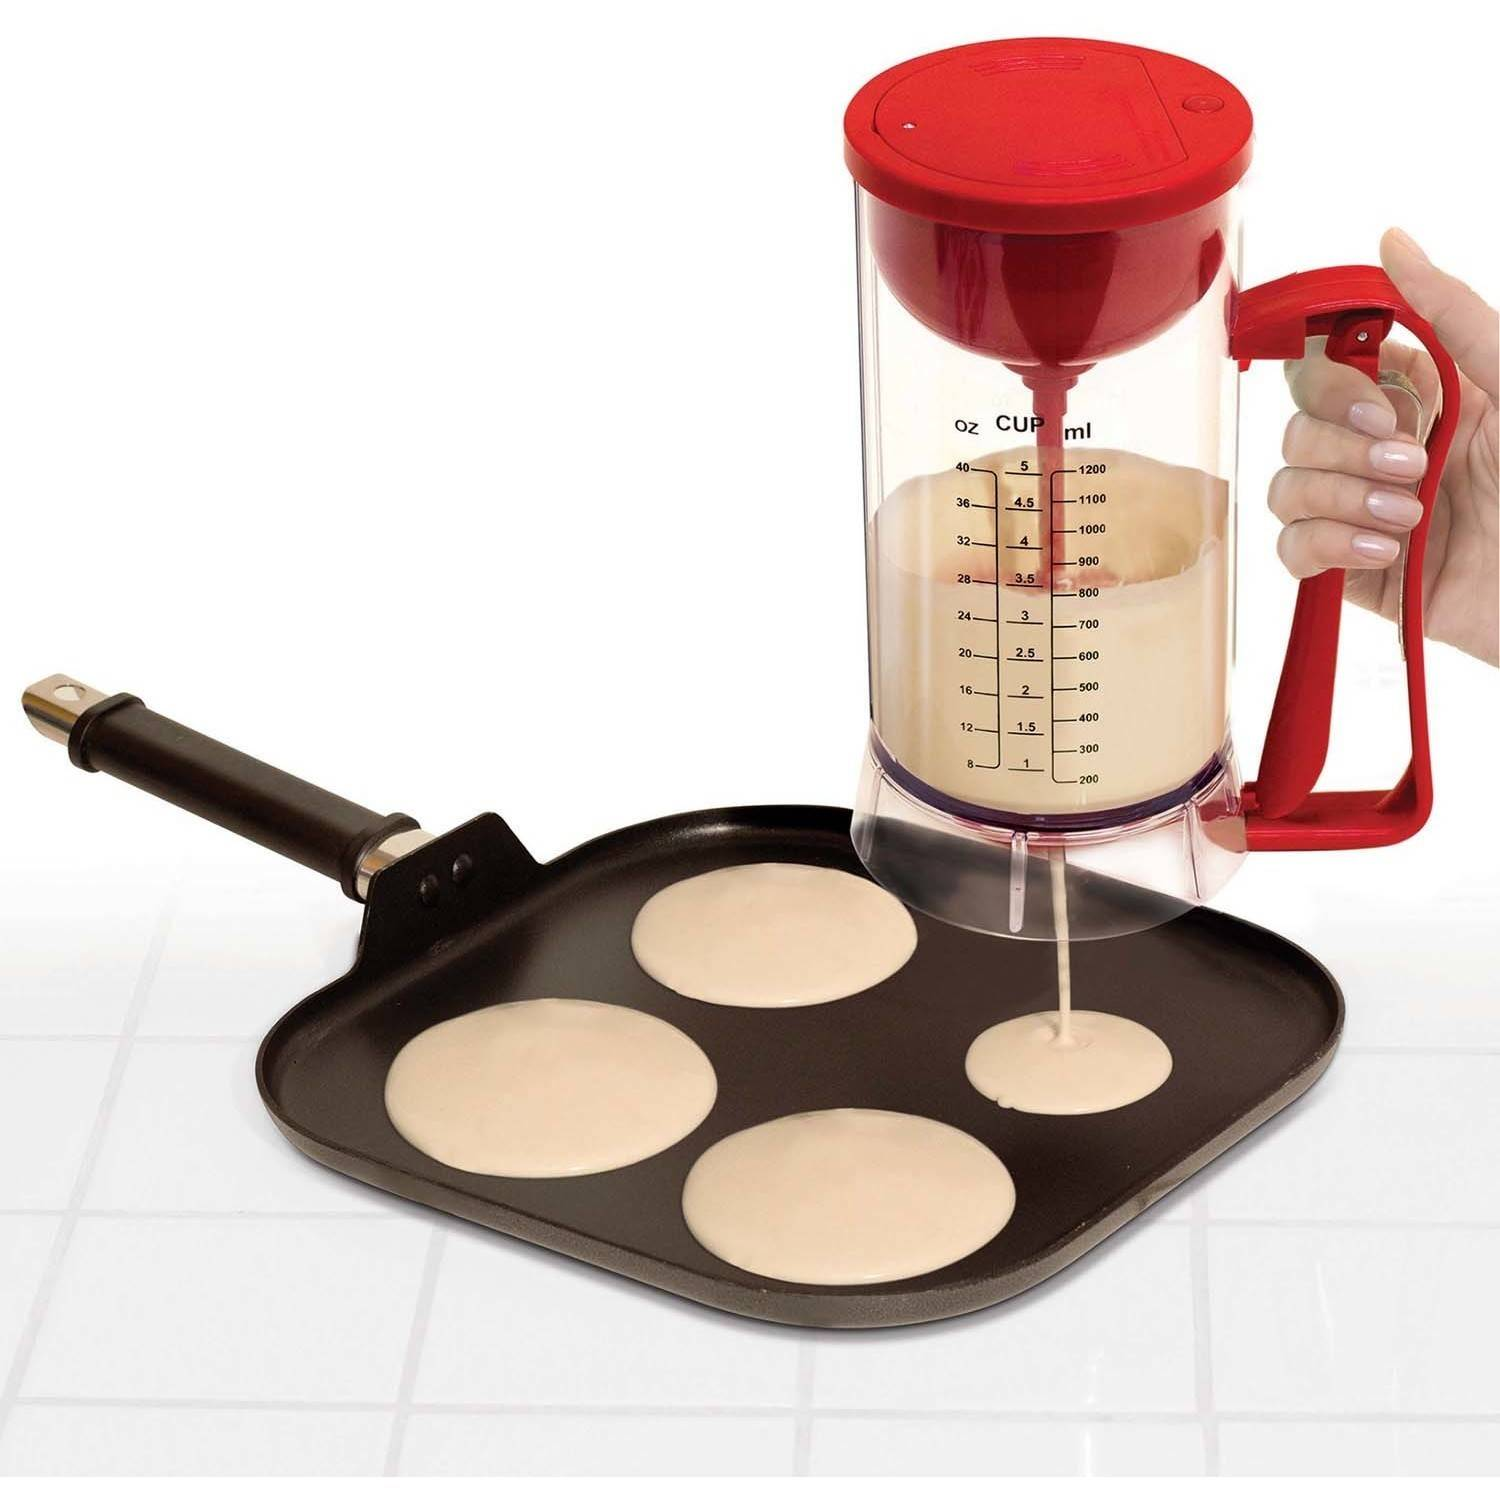 Handy Gourmet Jb6740 Cordless Electric Pancake Machine, Red